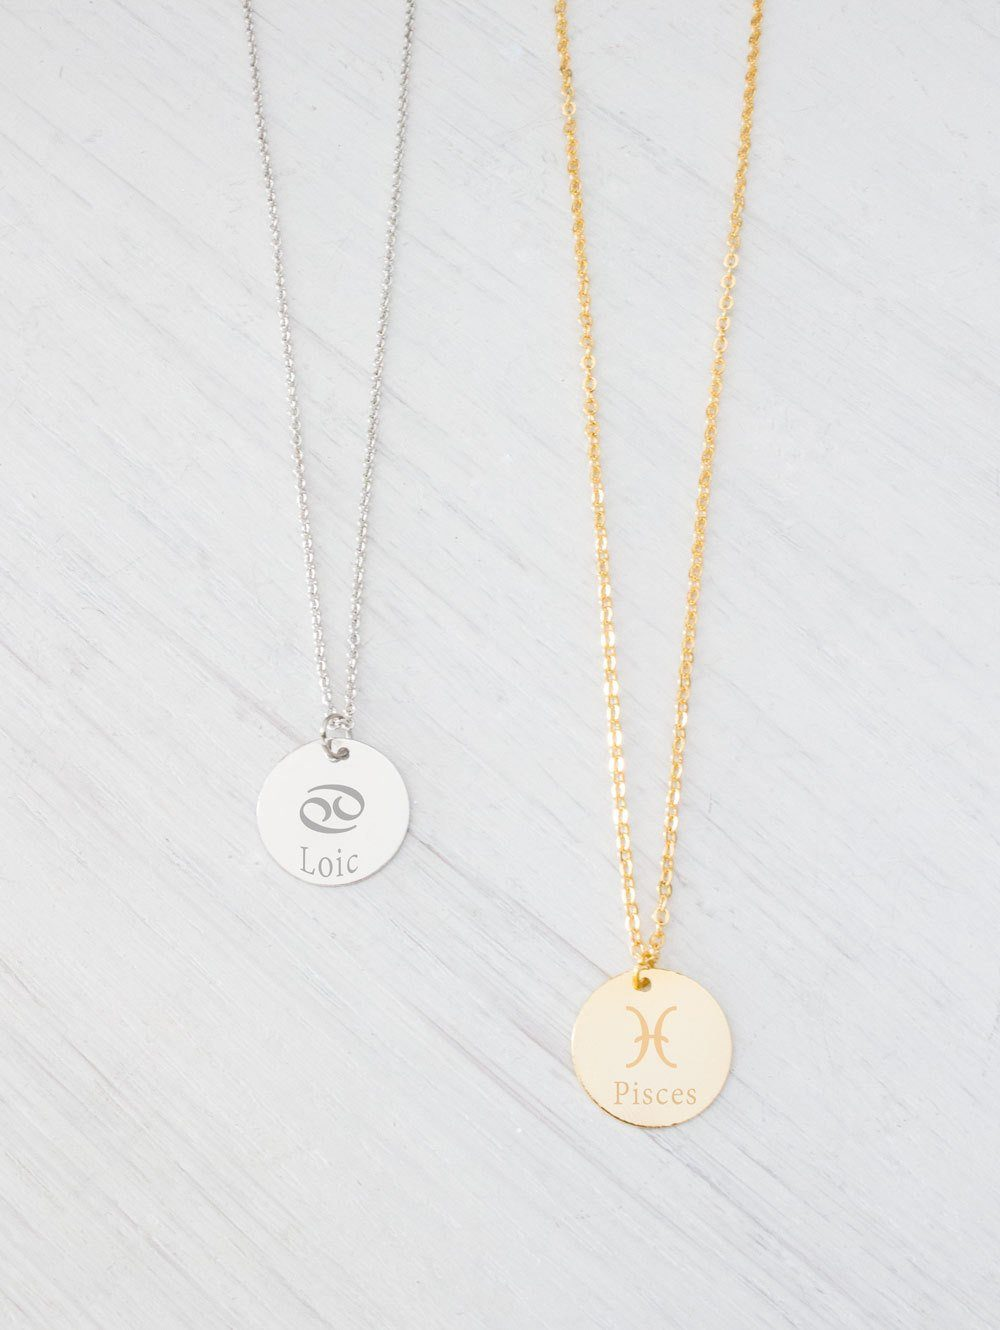 Personalized Engraved Zodiac Signs Constellation Necklace - product_type] - Beautiz